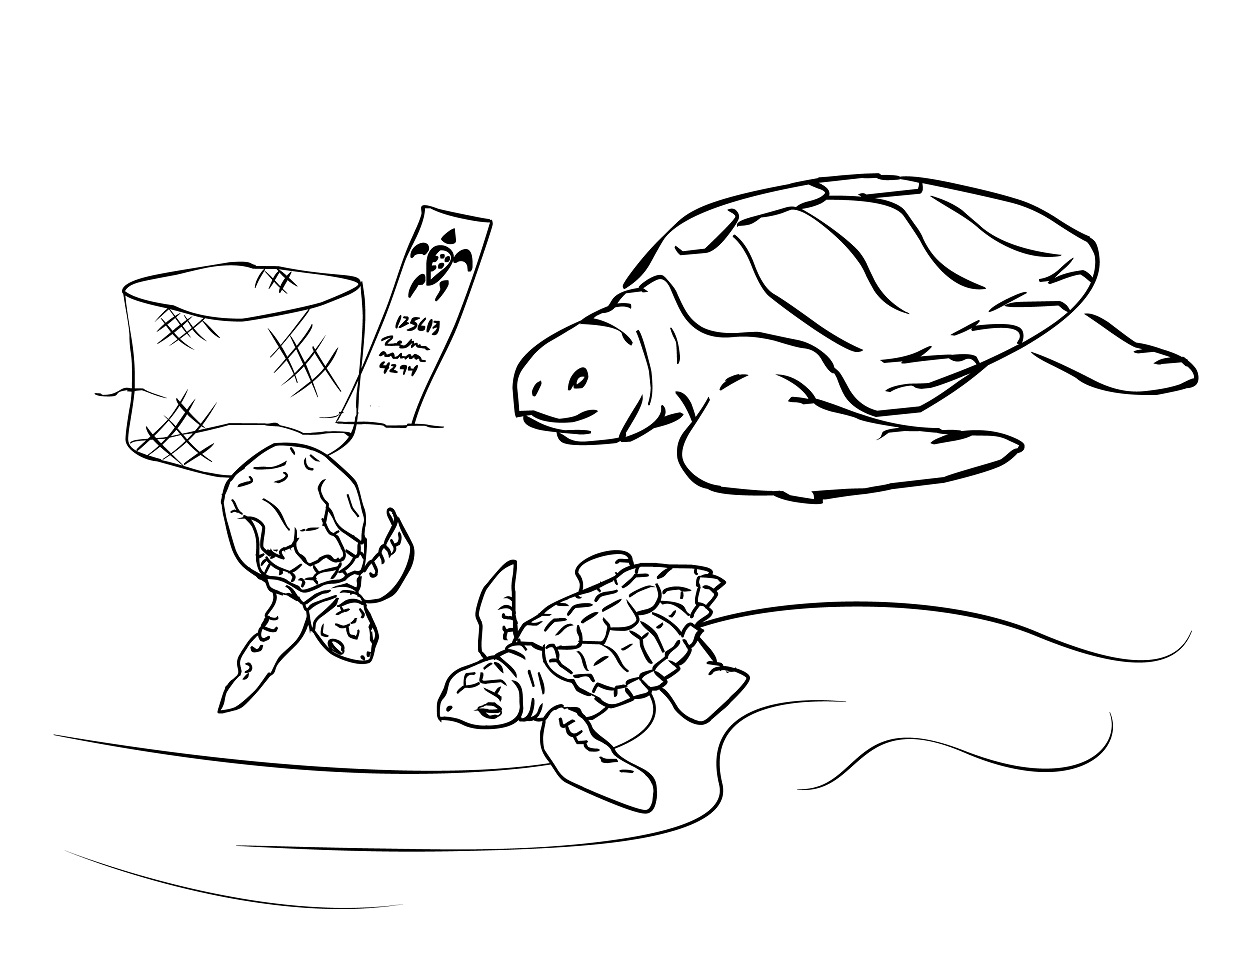 tortoise colouring pictures free printable turtle coloring pages for kids tortoise pictures colouring